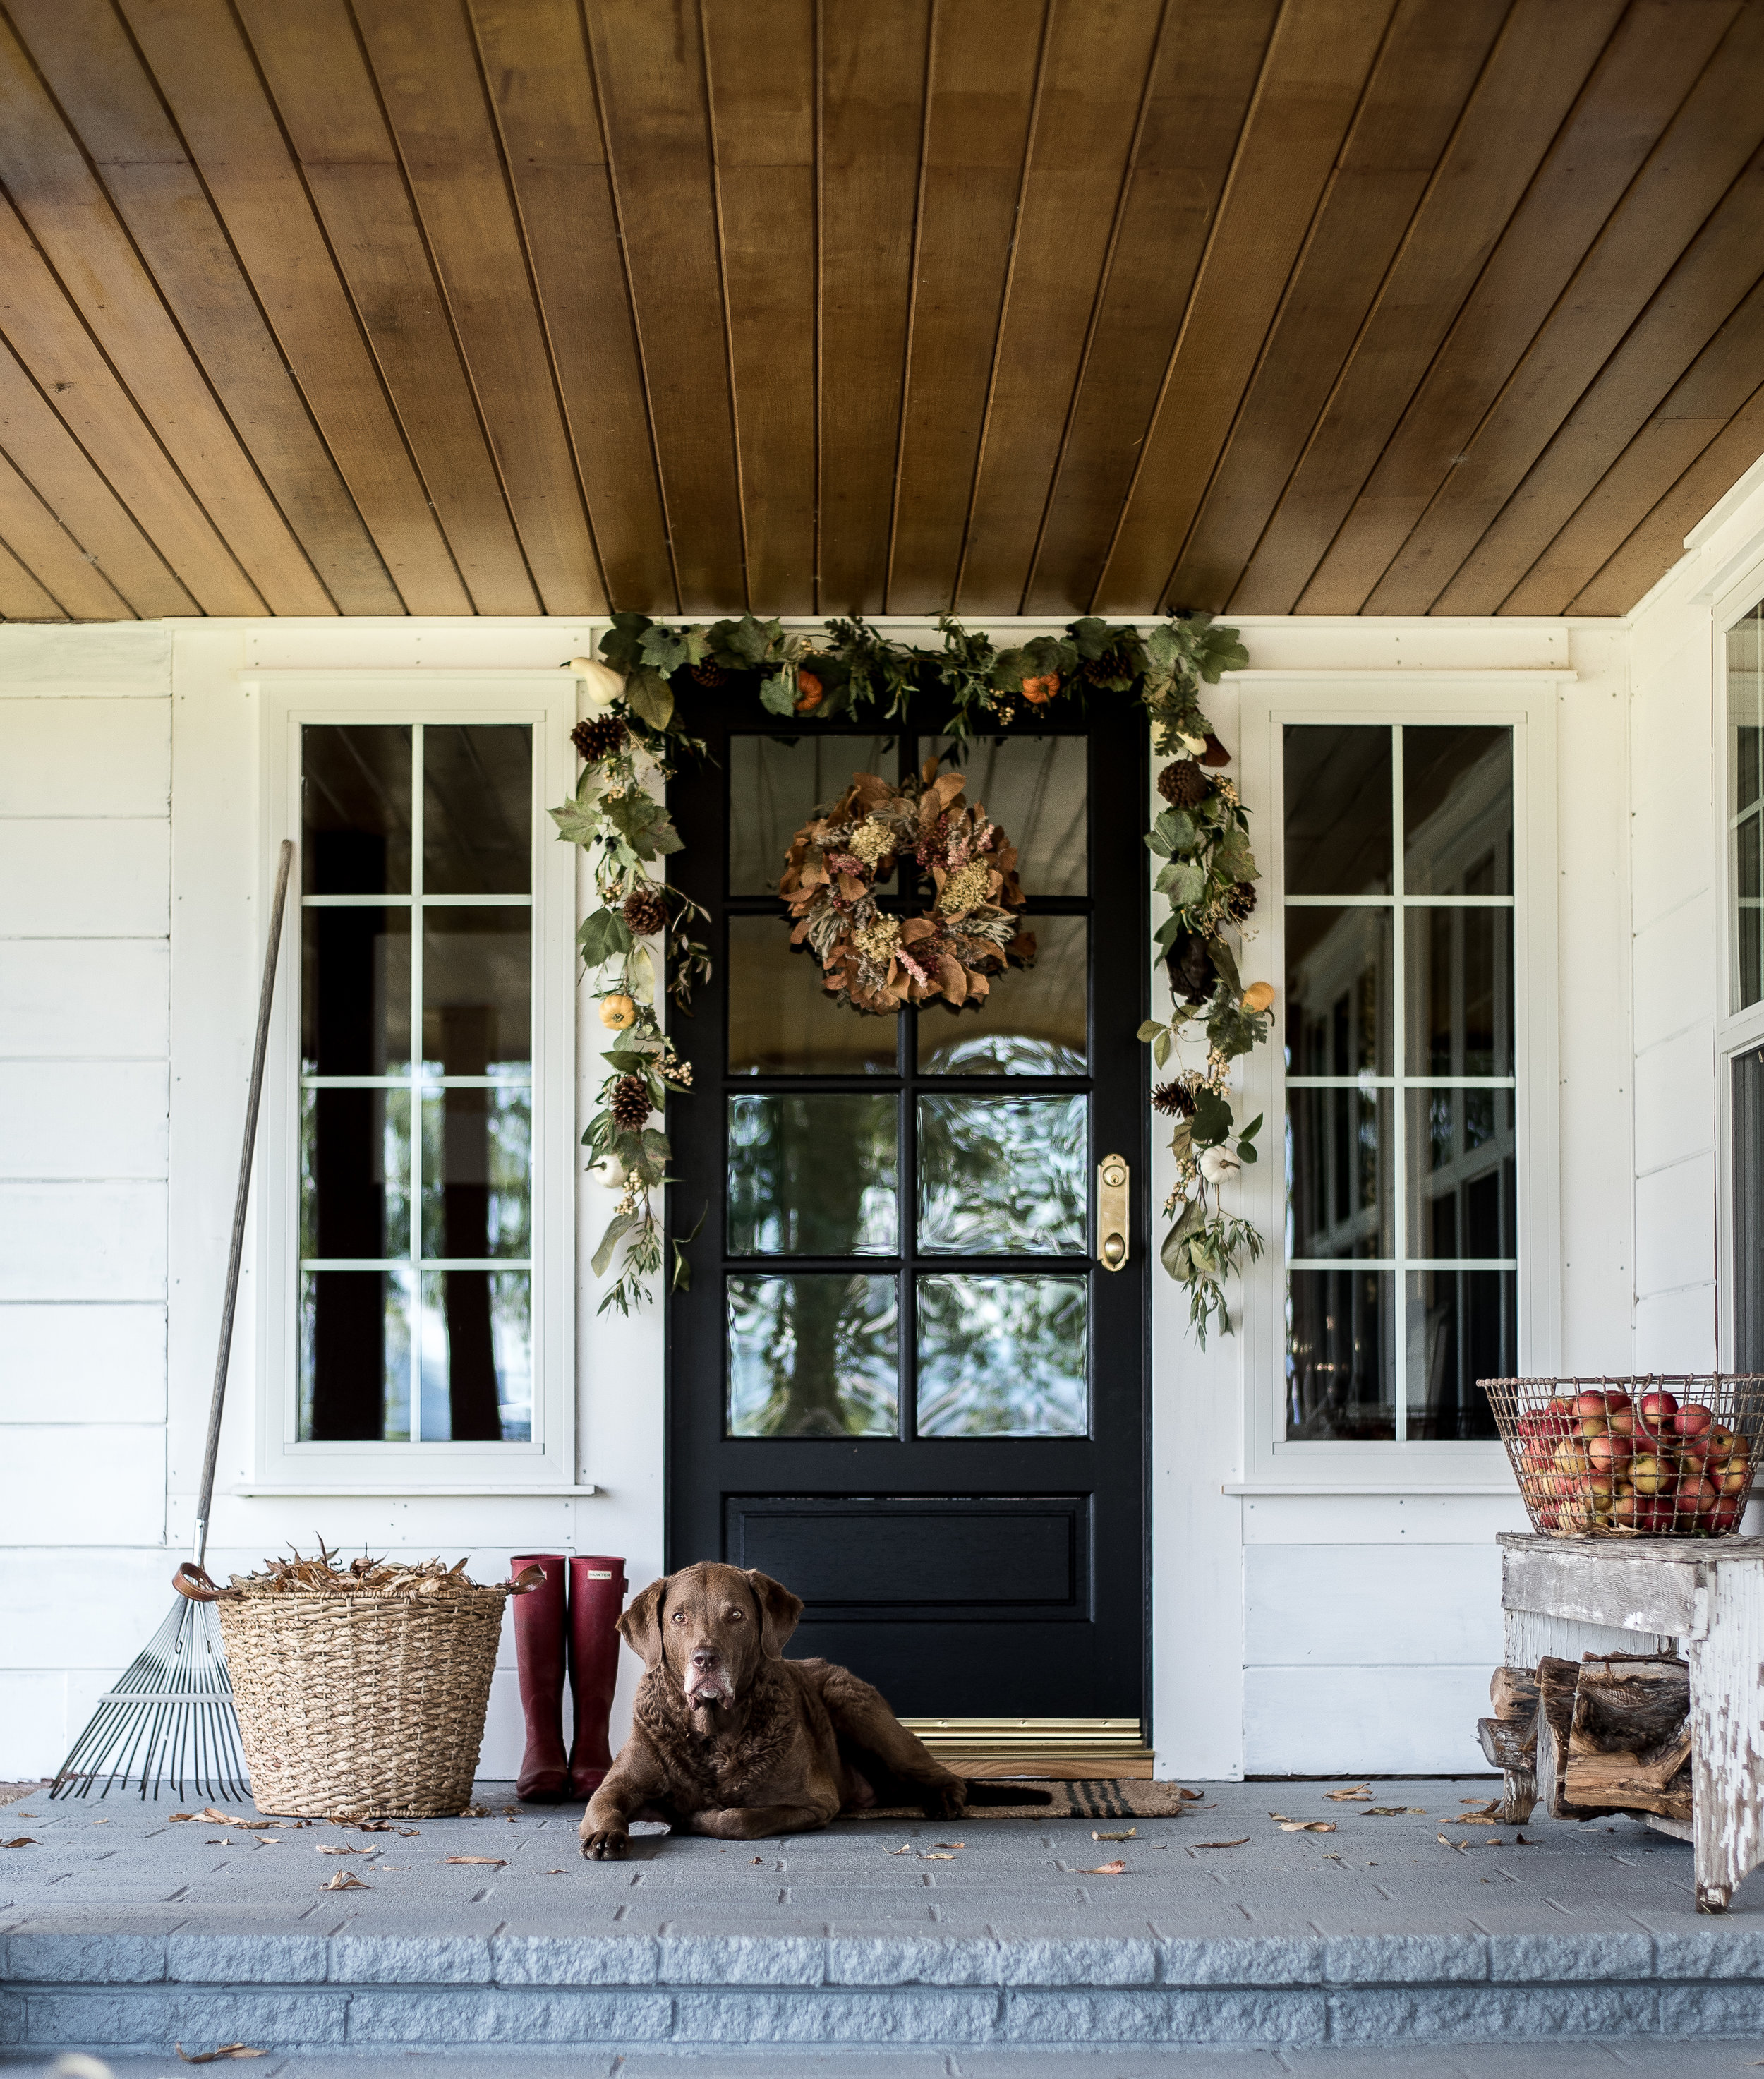 A few simple fall decorating ideas for your front porch from five different bloggers! #fallporch #falldecorating #falldecor #frontporchdecorations